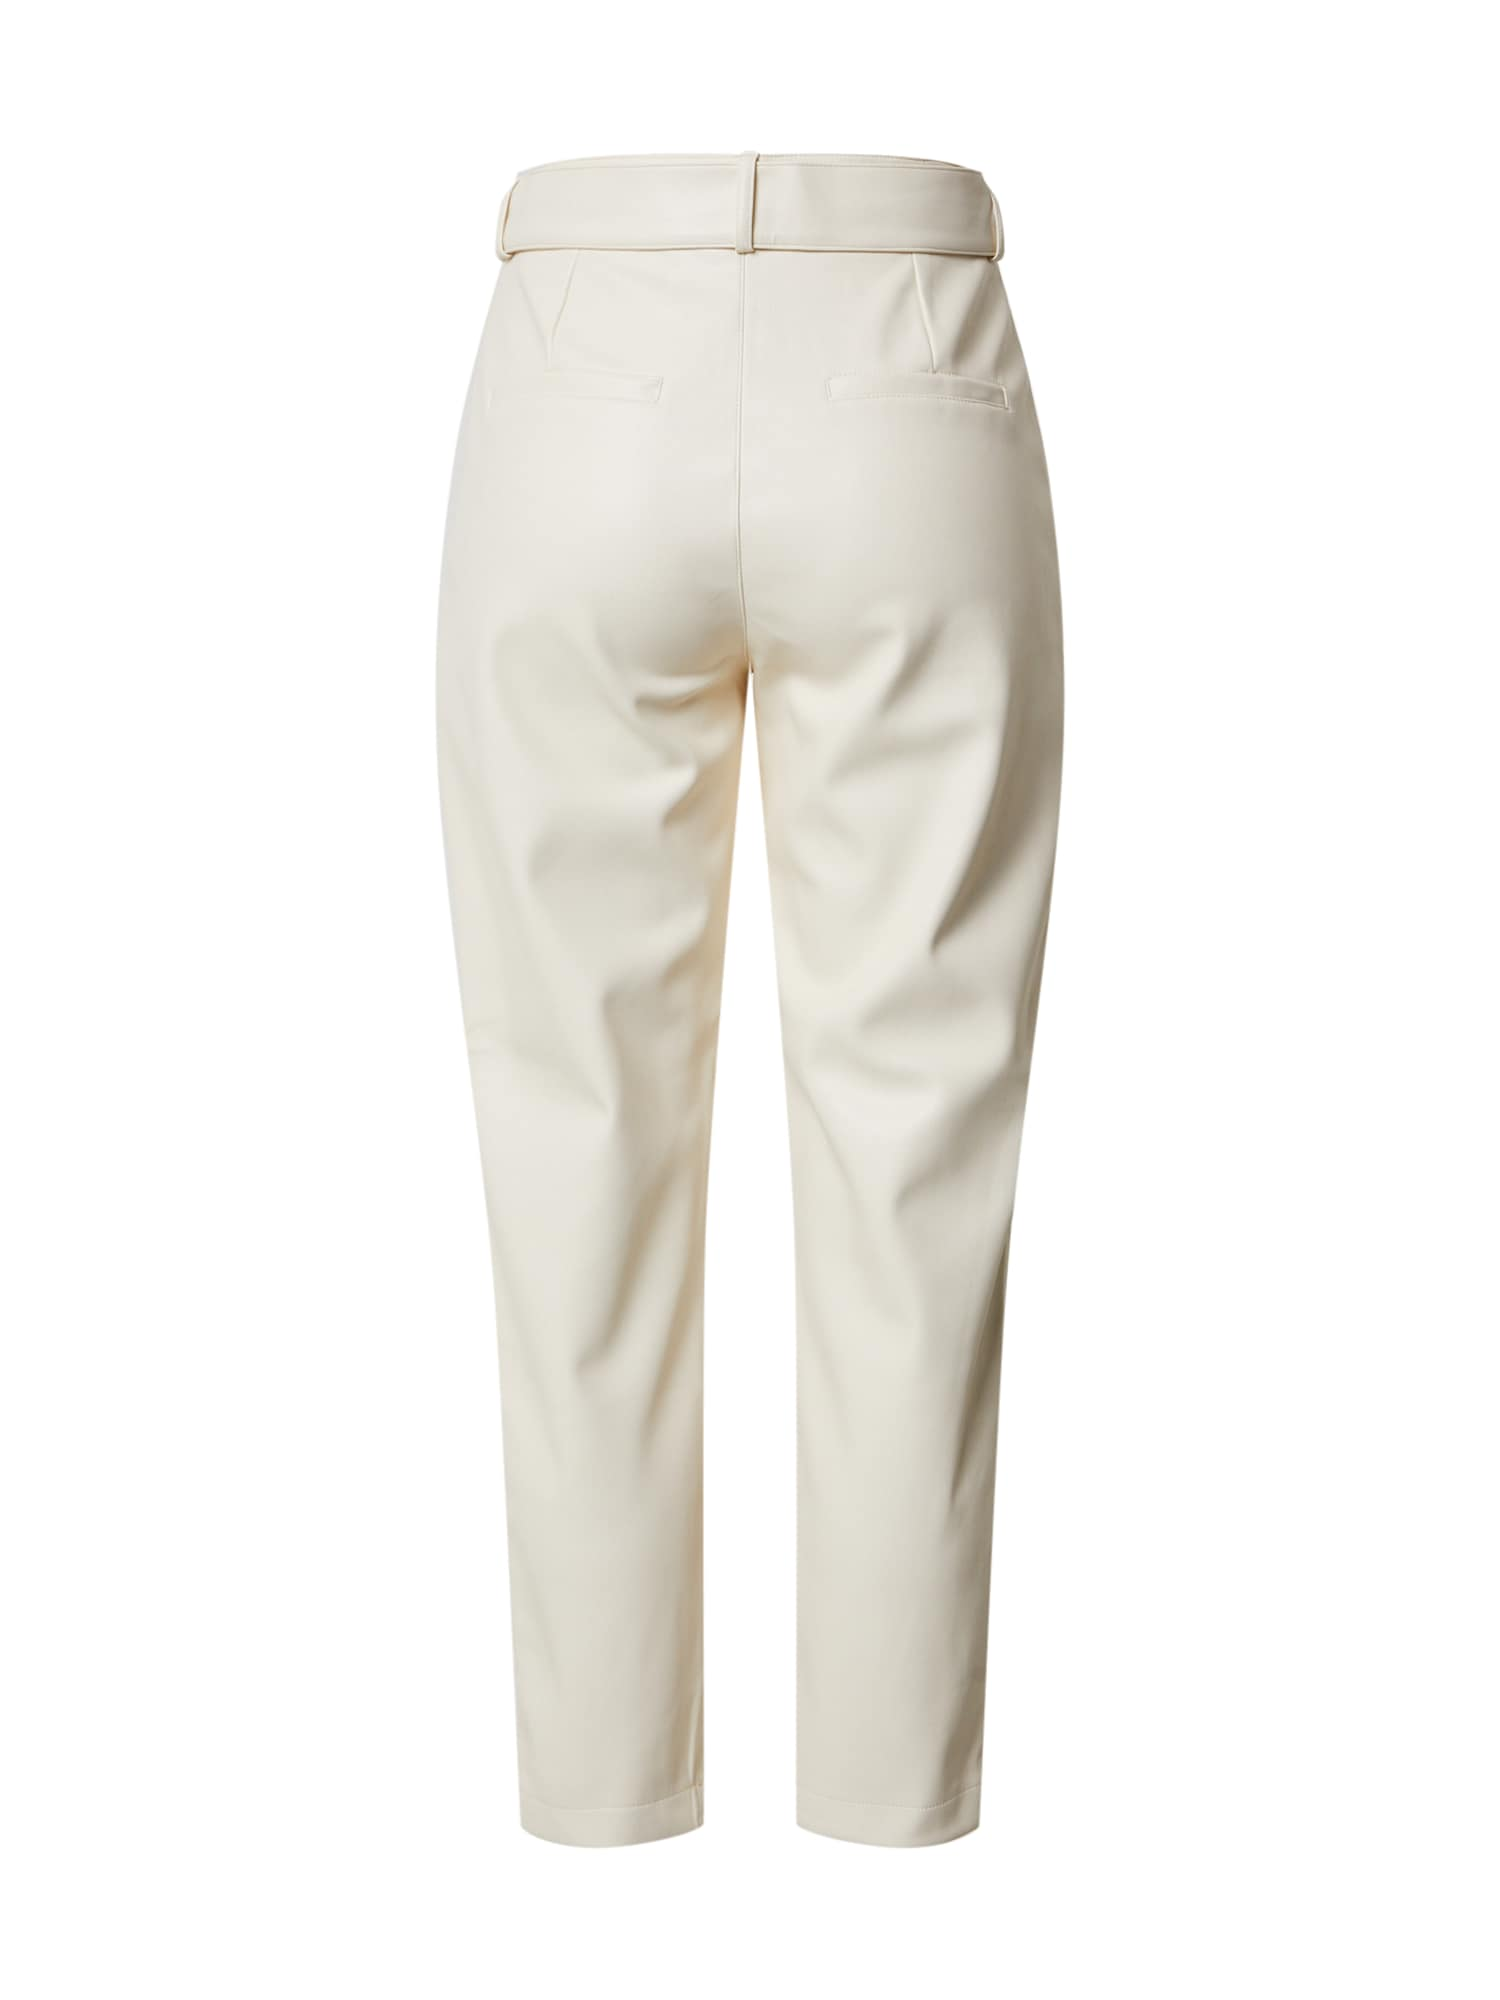 dorothy perkins - Hose 'Cream PU Belted Trouser'